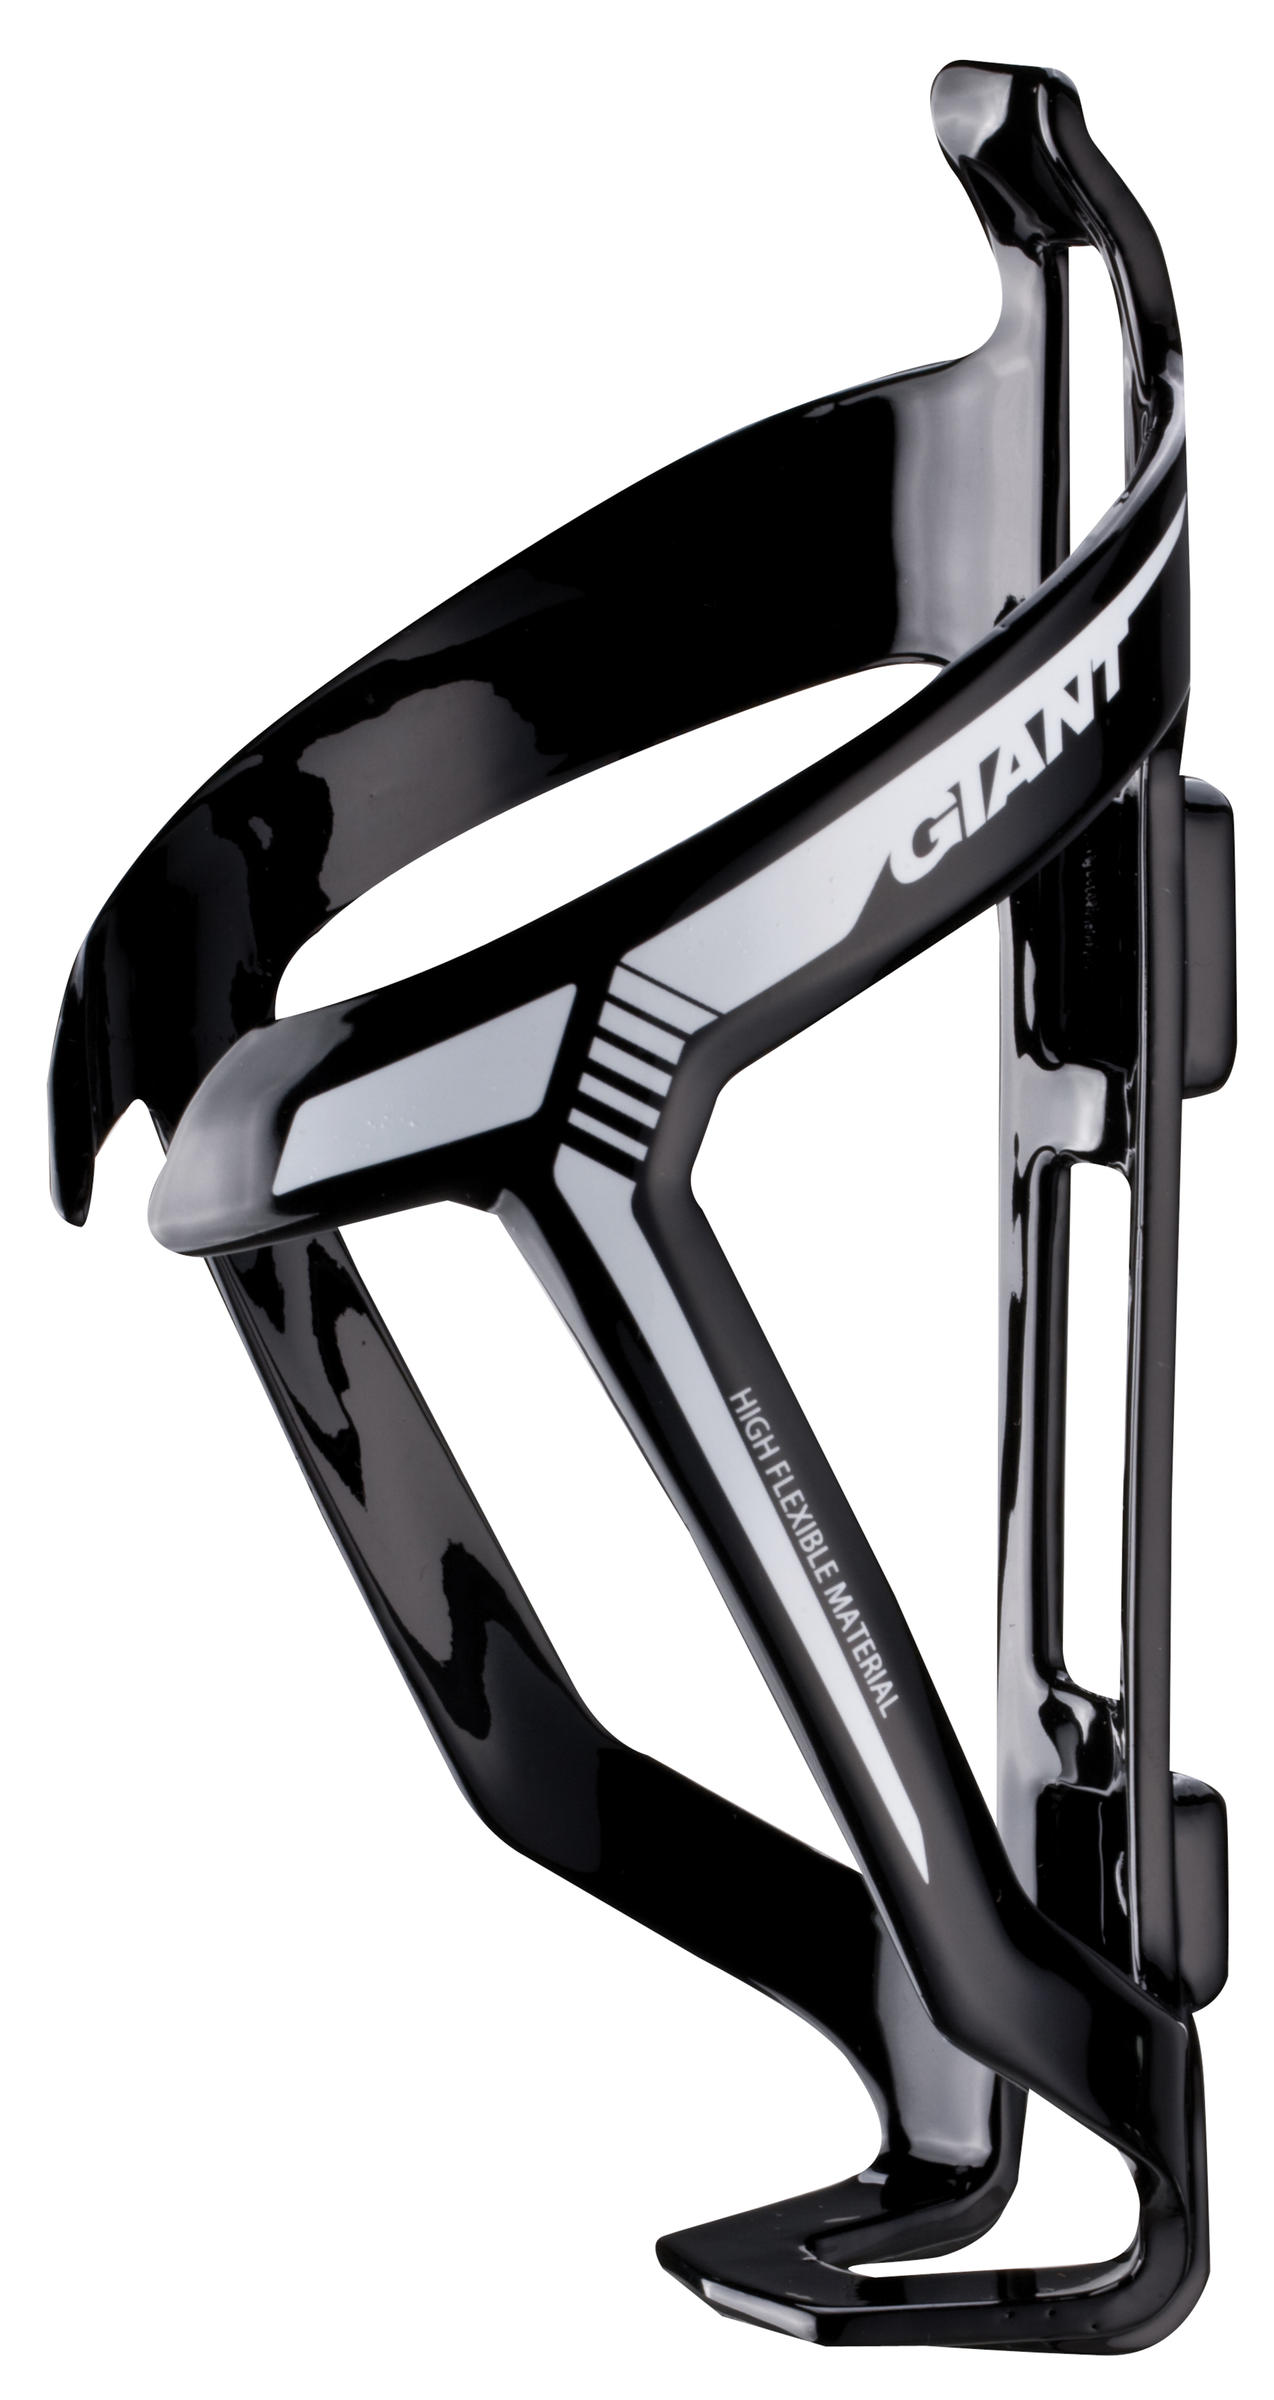 Giant Proway Bottle Cage One Size by Giant Black Red